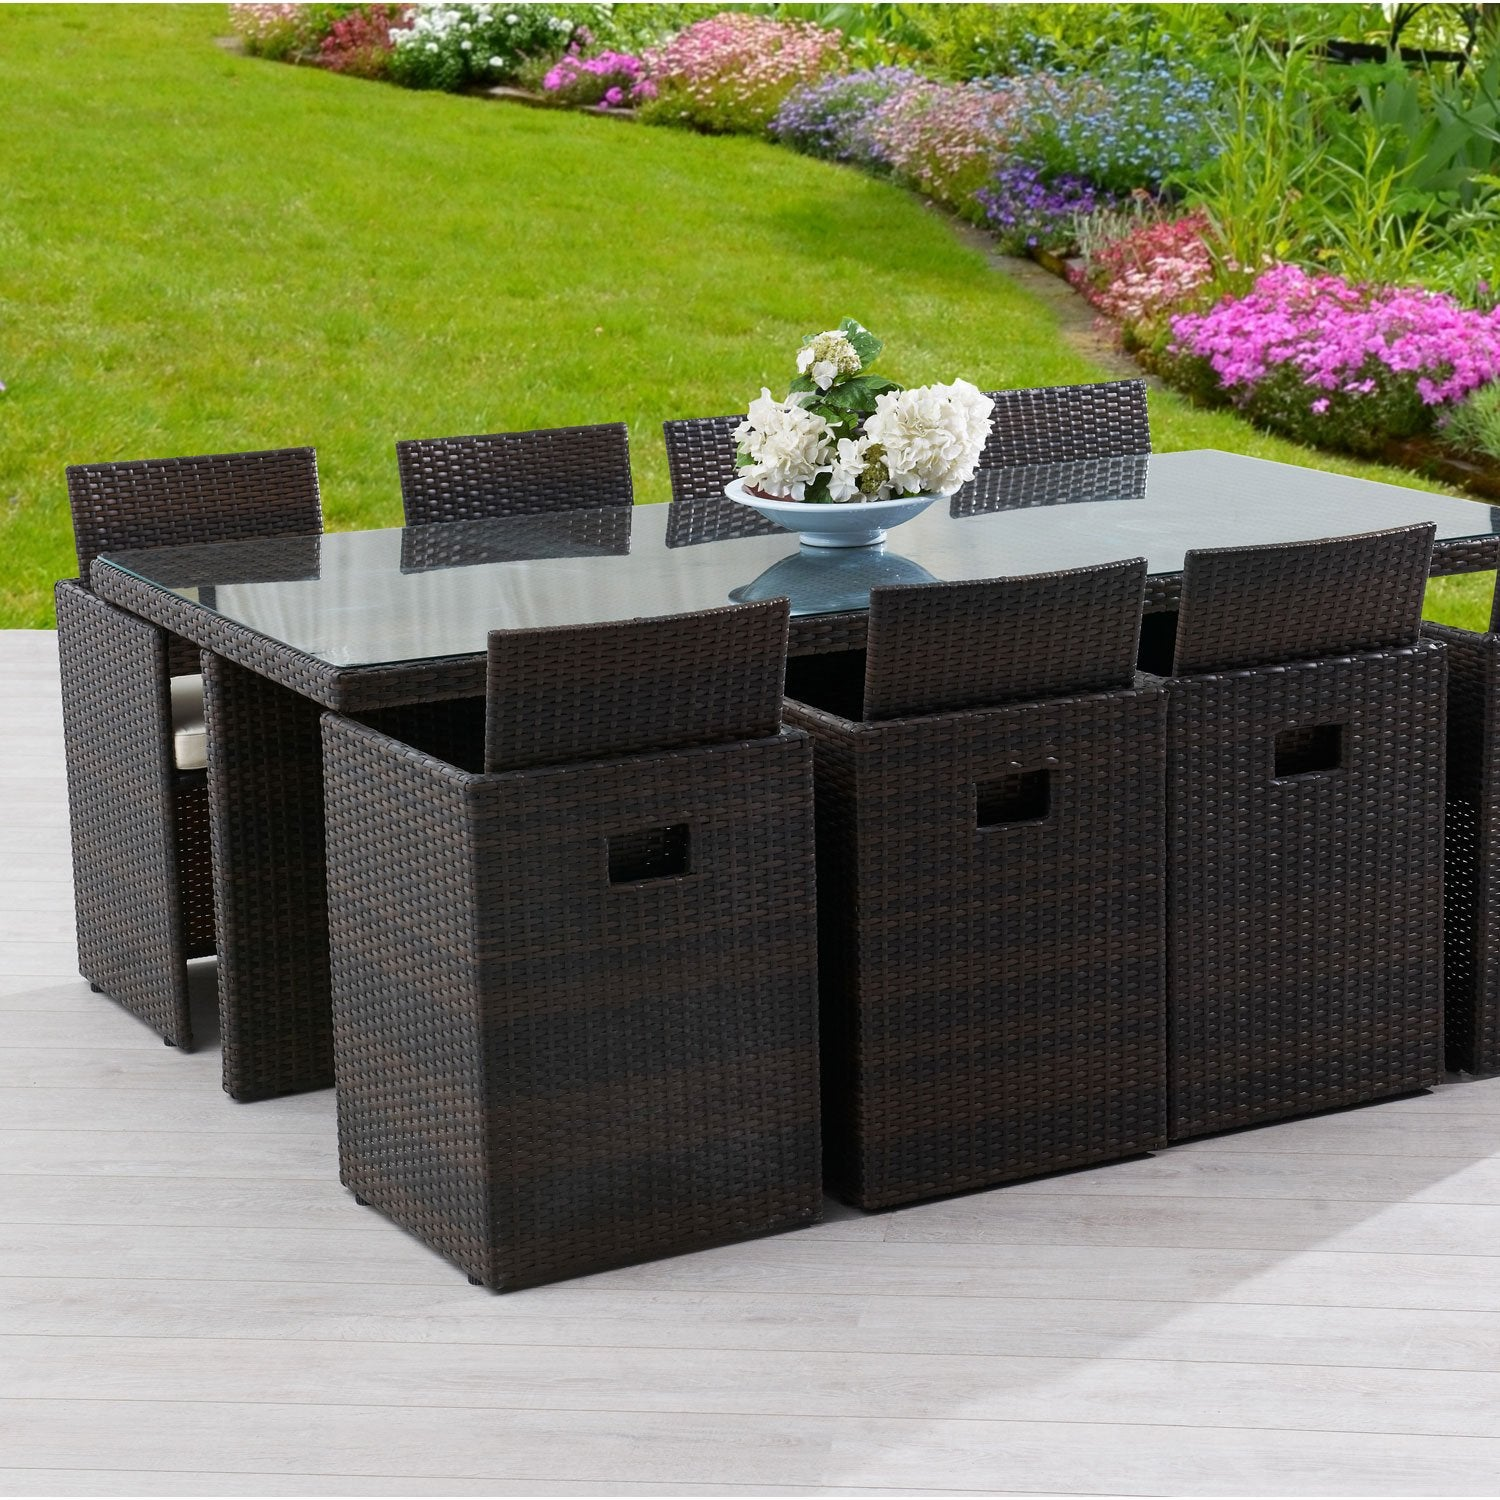 Salon de jardin encastrable r sine tress e marron 1 table for Salon de jardin pas cher amazone